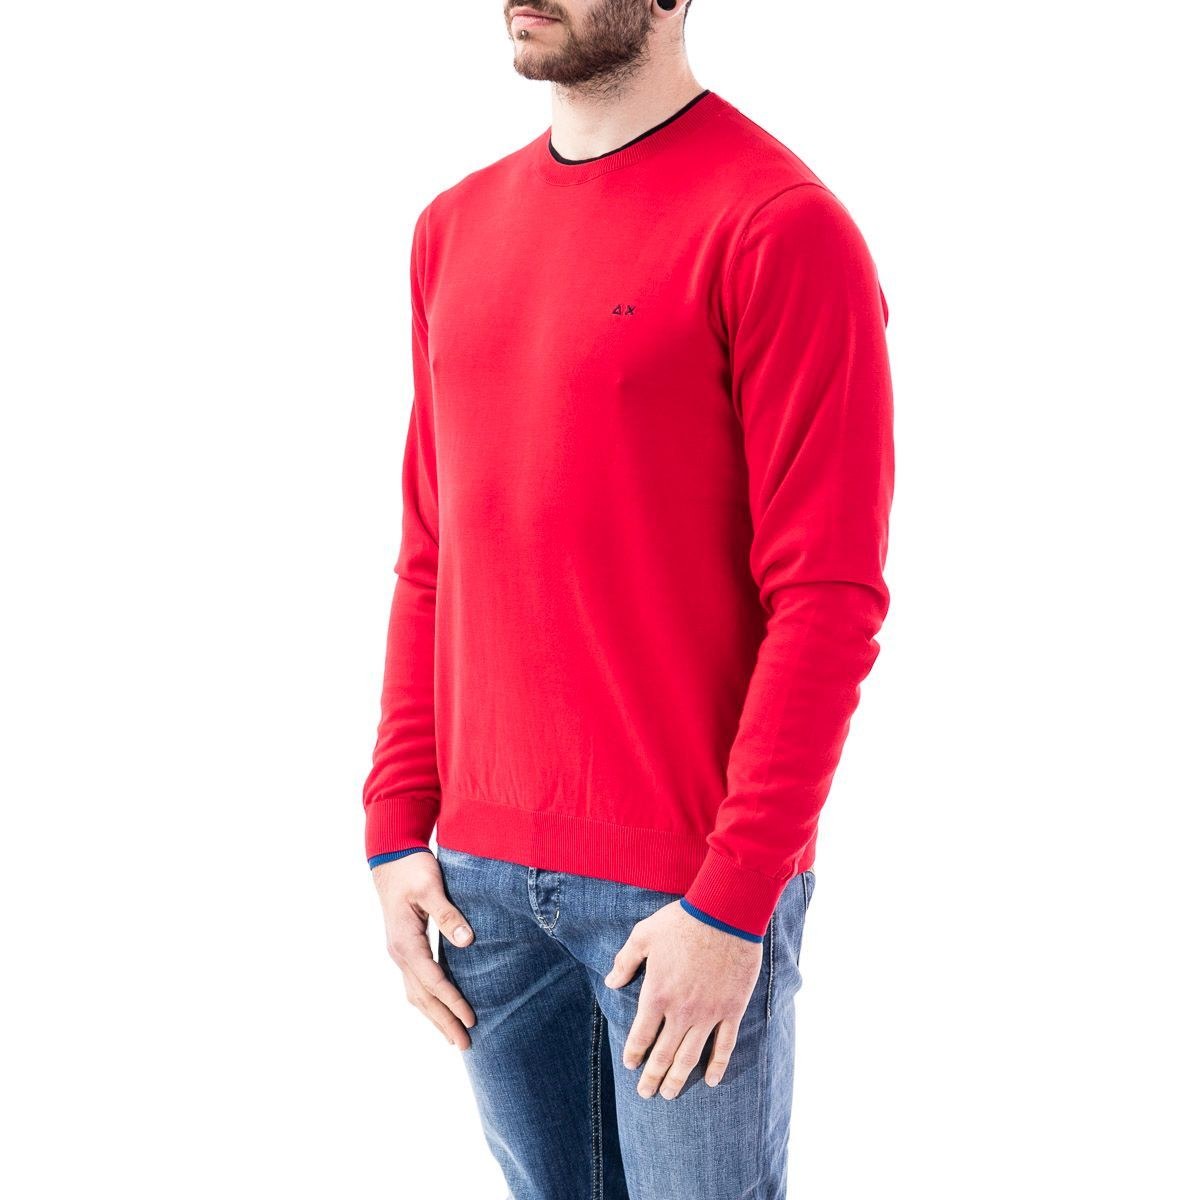 SUN 68 MEN'S K3010410 RED COTTON SWEATER